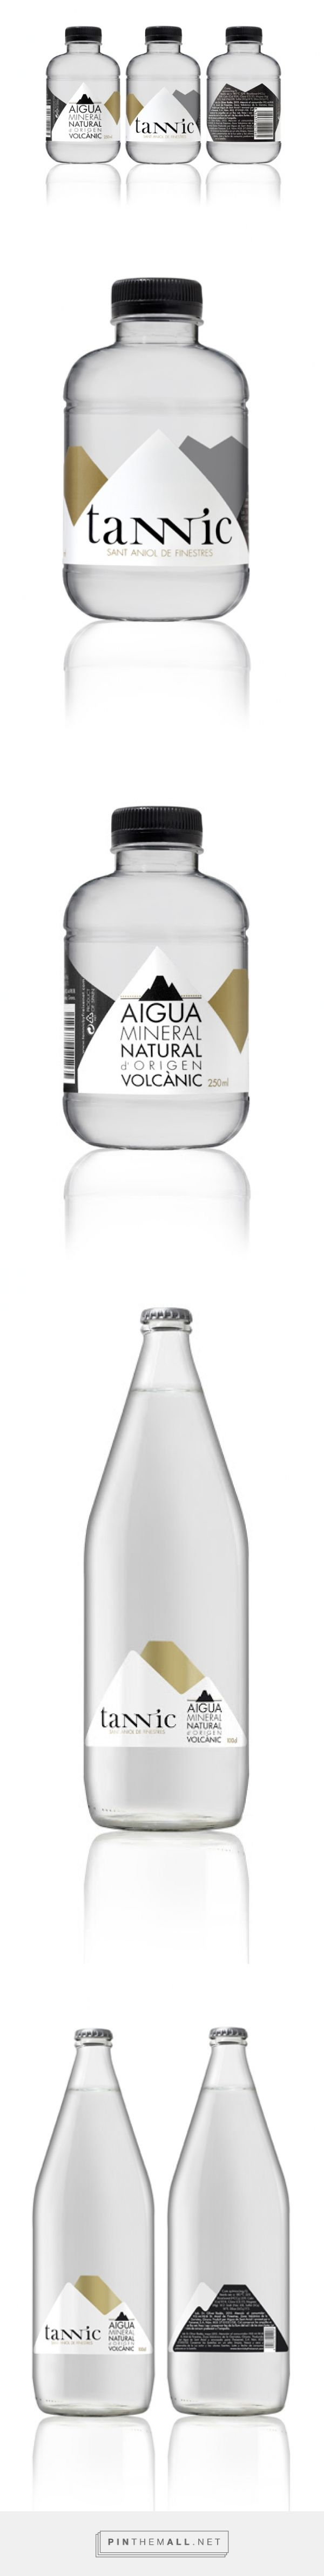 Tannic Volcanic Mineral #water #packaging - http://www.packagingoftheworld.com/2015/02/tannic-volcanic-mineral-water.html